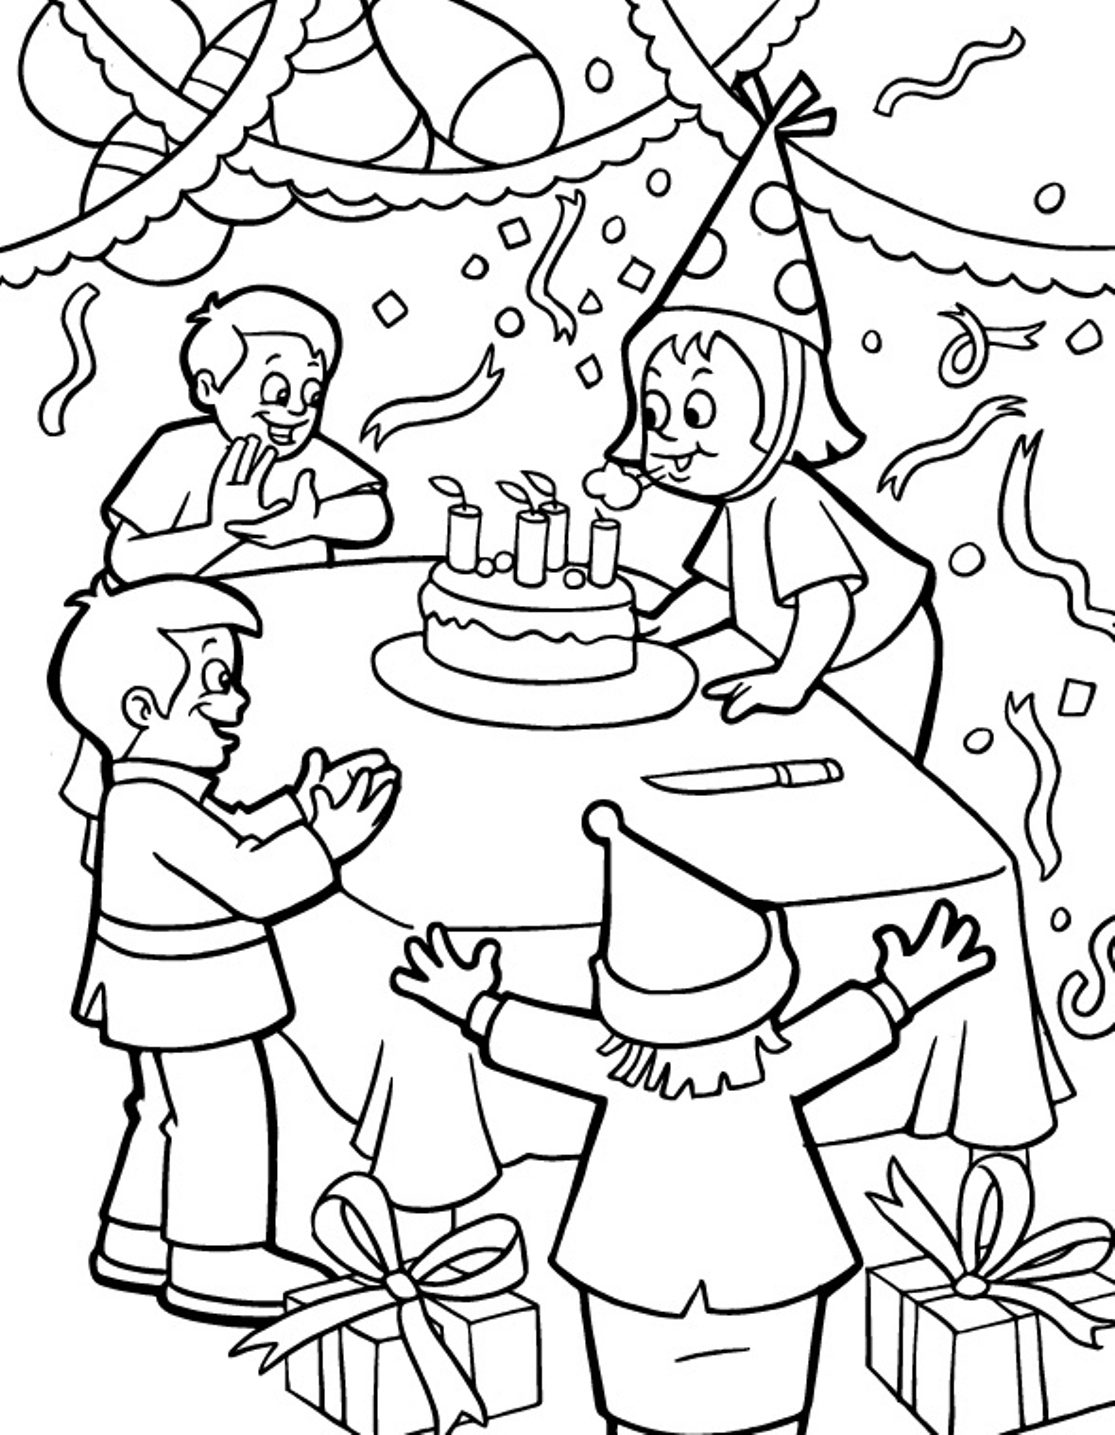 birthday party pictures for drawing ; happy-coloring-pages-birthday-10